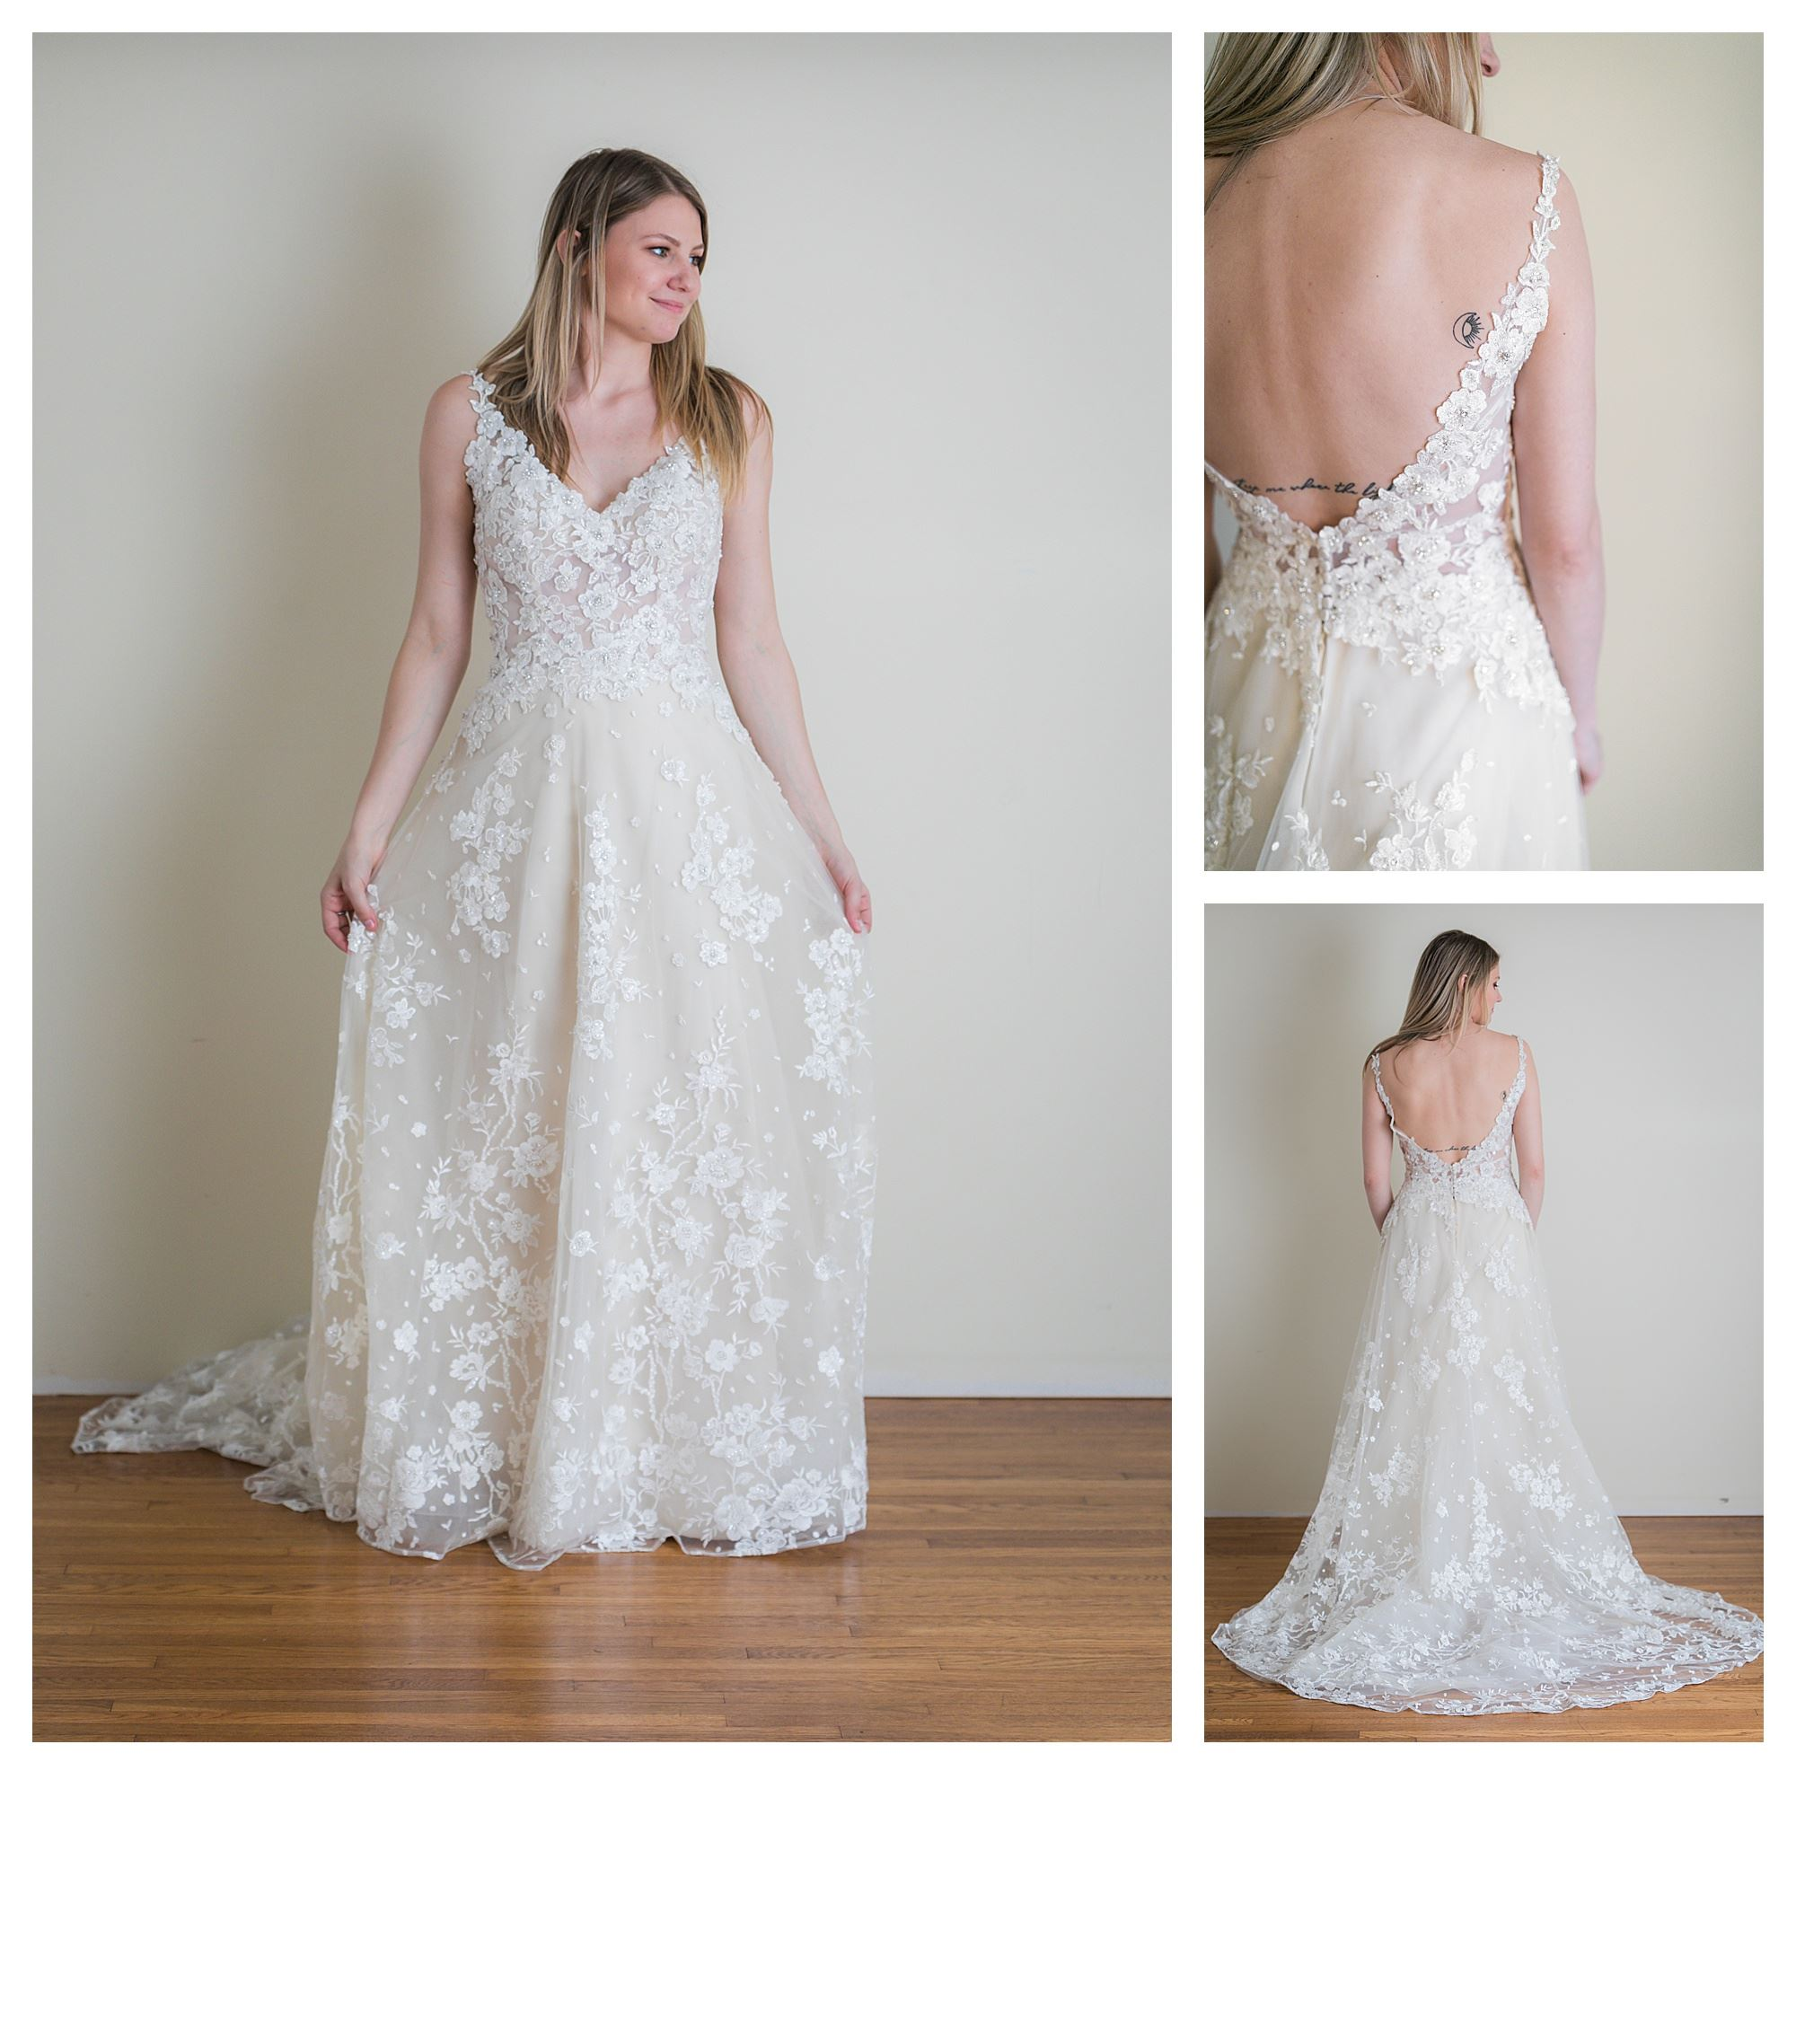 Shreya - Size 8 - Ivory/Vintage - Originally priced $2999 - Sample box price $1999